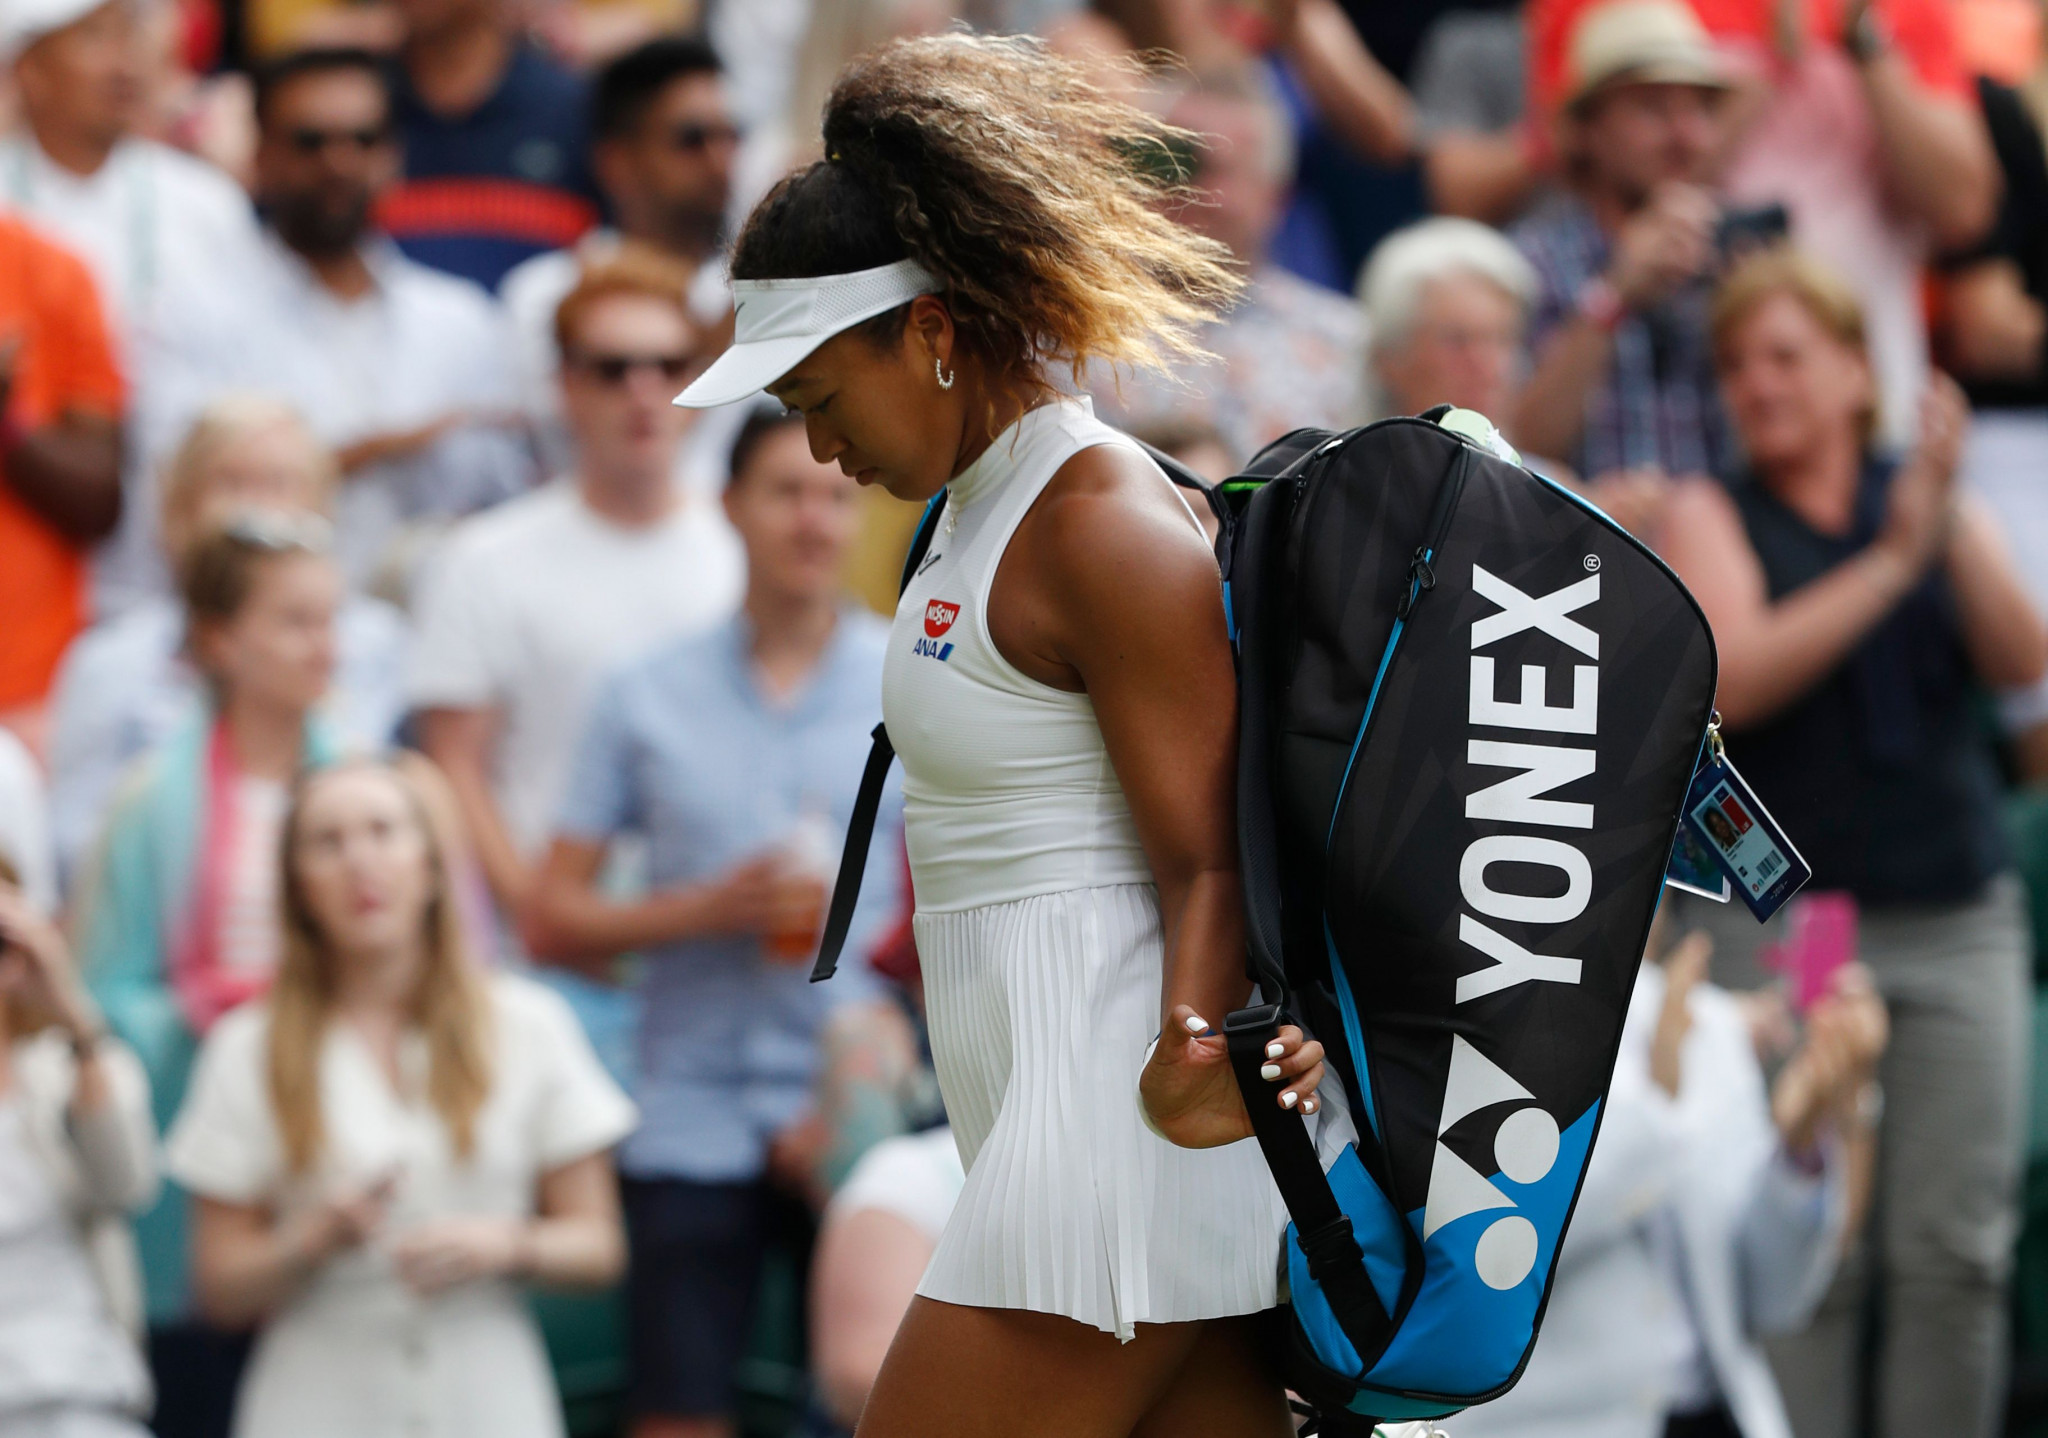 Williams suffers shock defeat to 15-year-old as second seed Osaka knocked out in Wimbledon first round